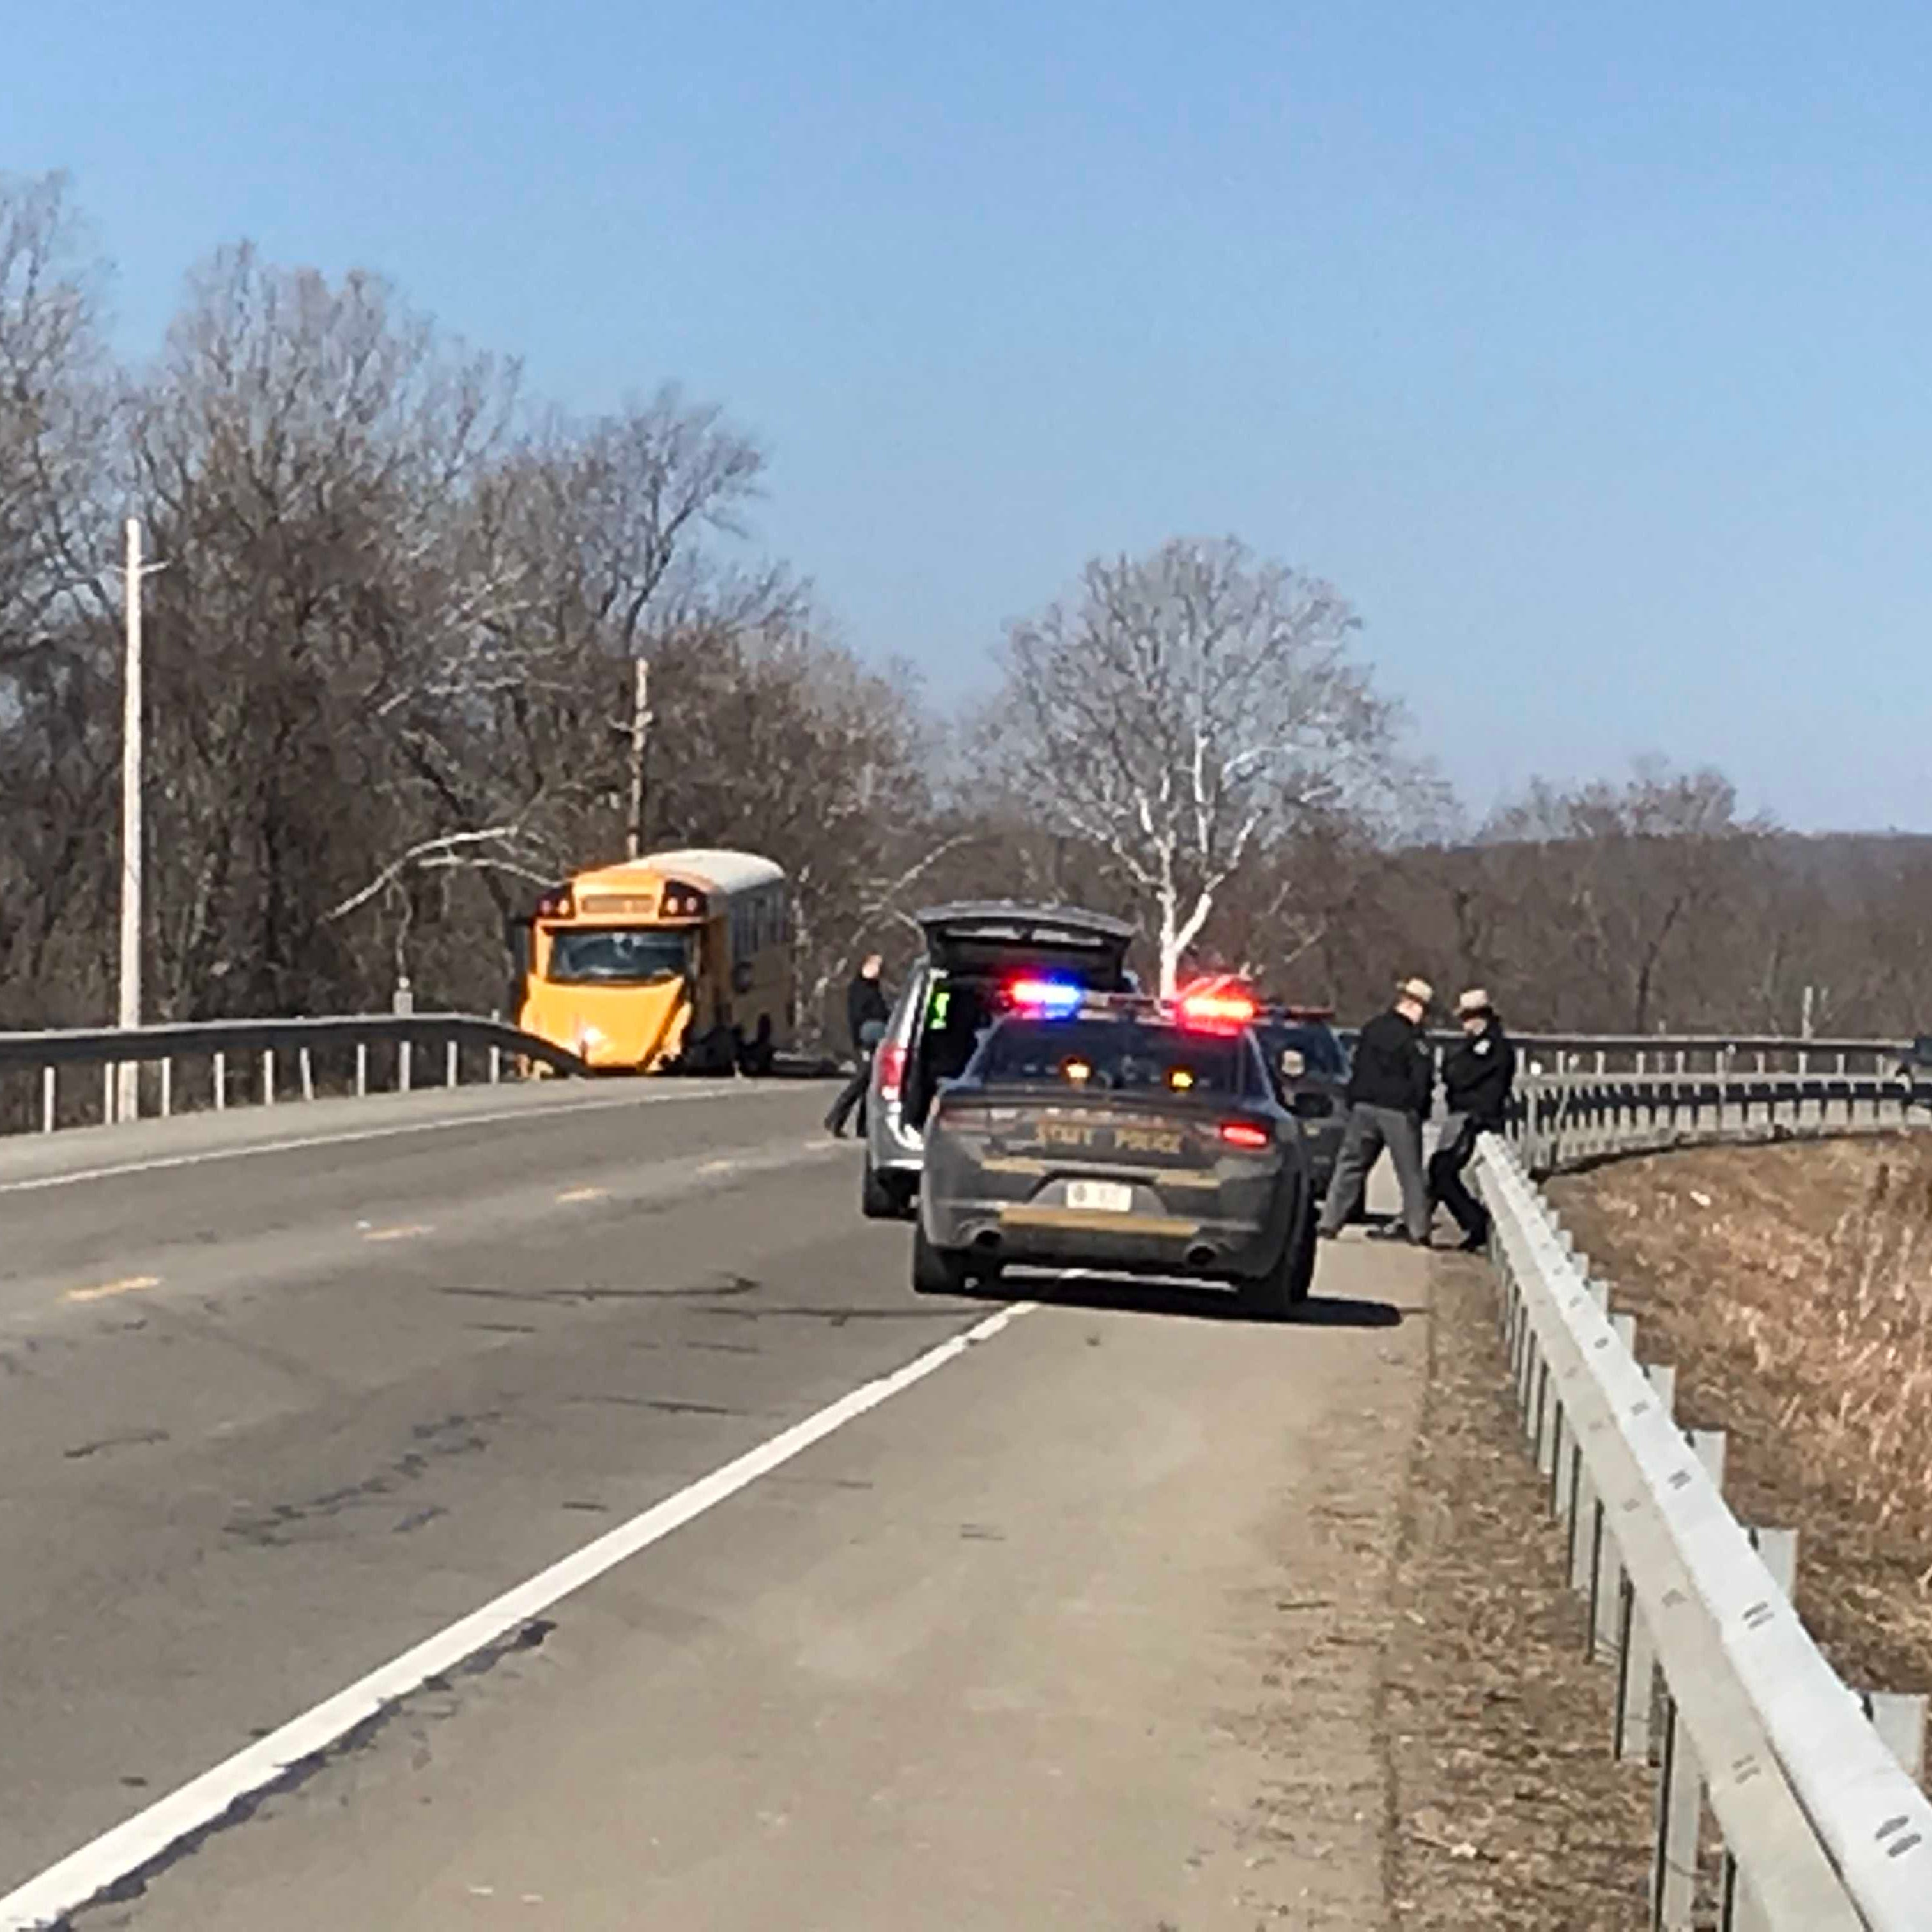 State police identify victim of Wednesday's fatal Erwin crash